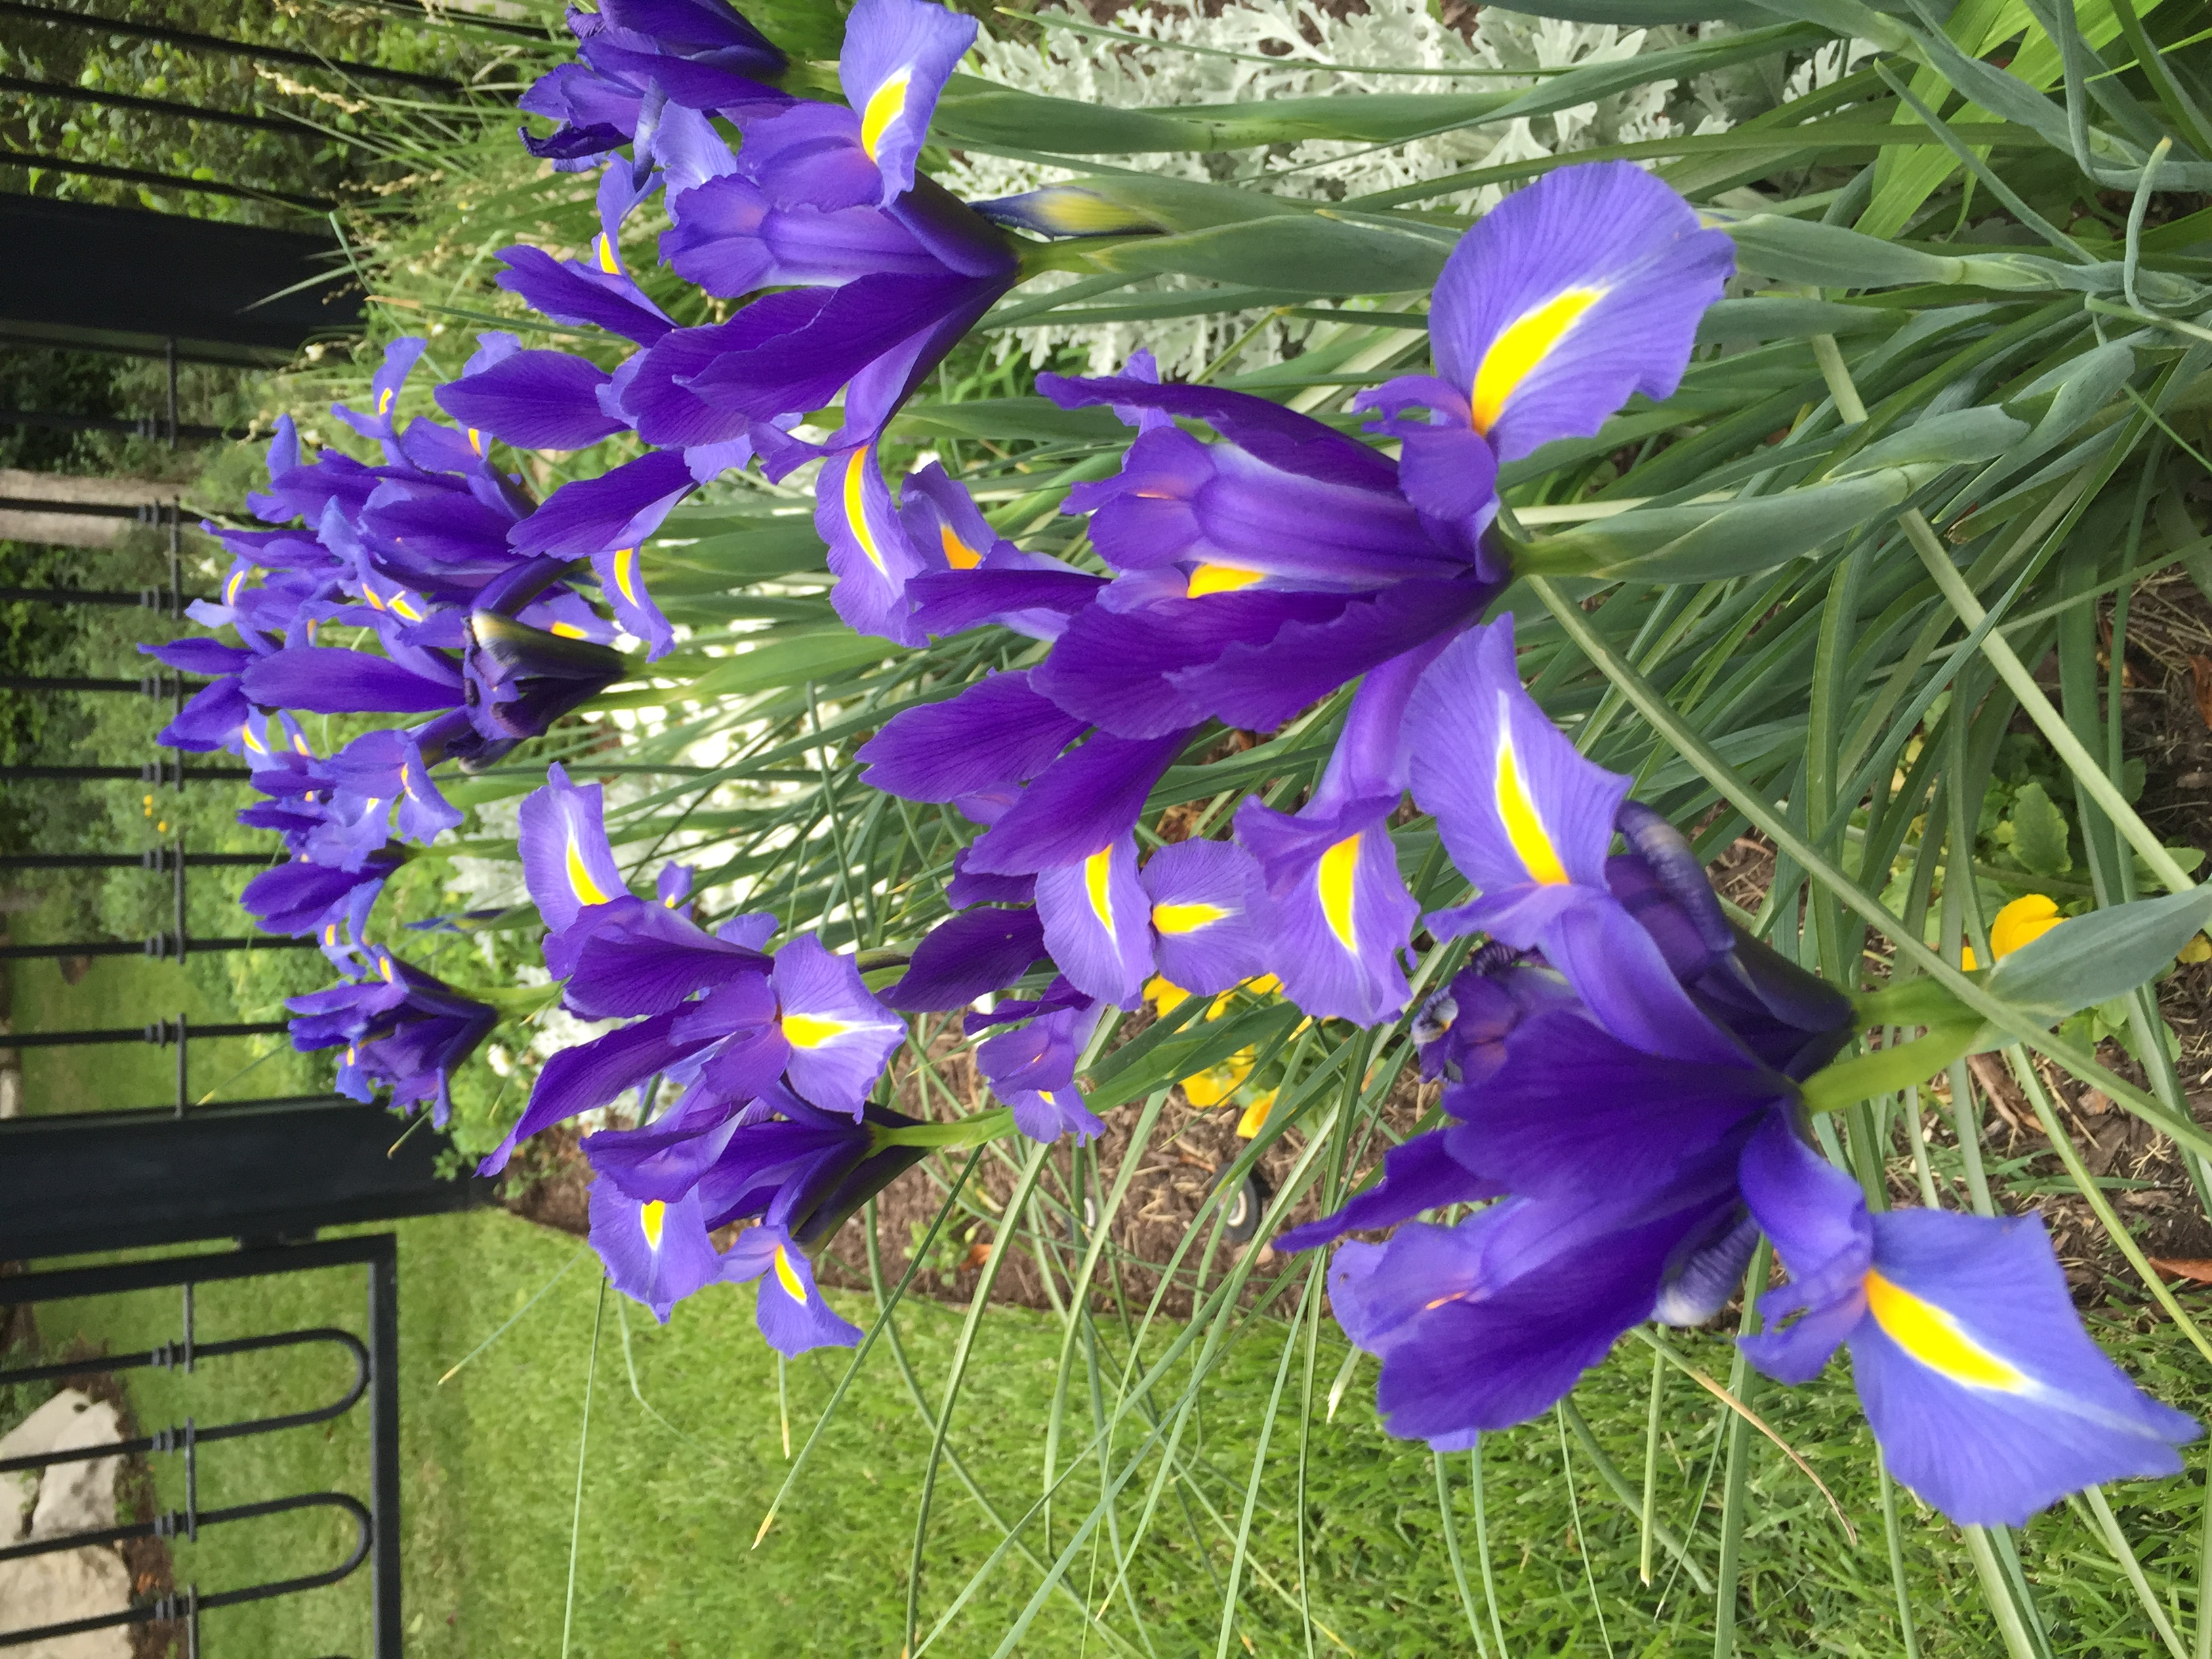 dutch iris are the first ones up